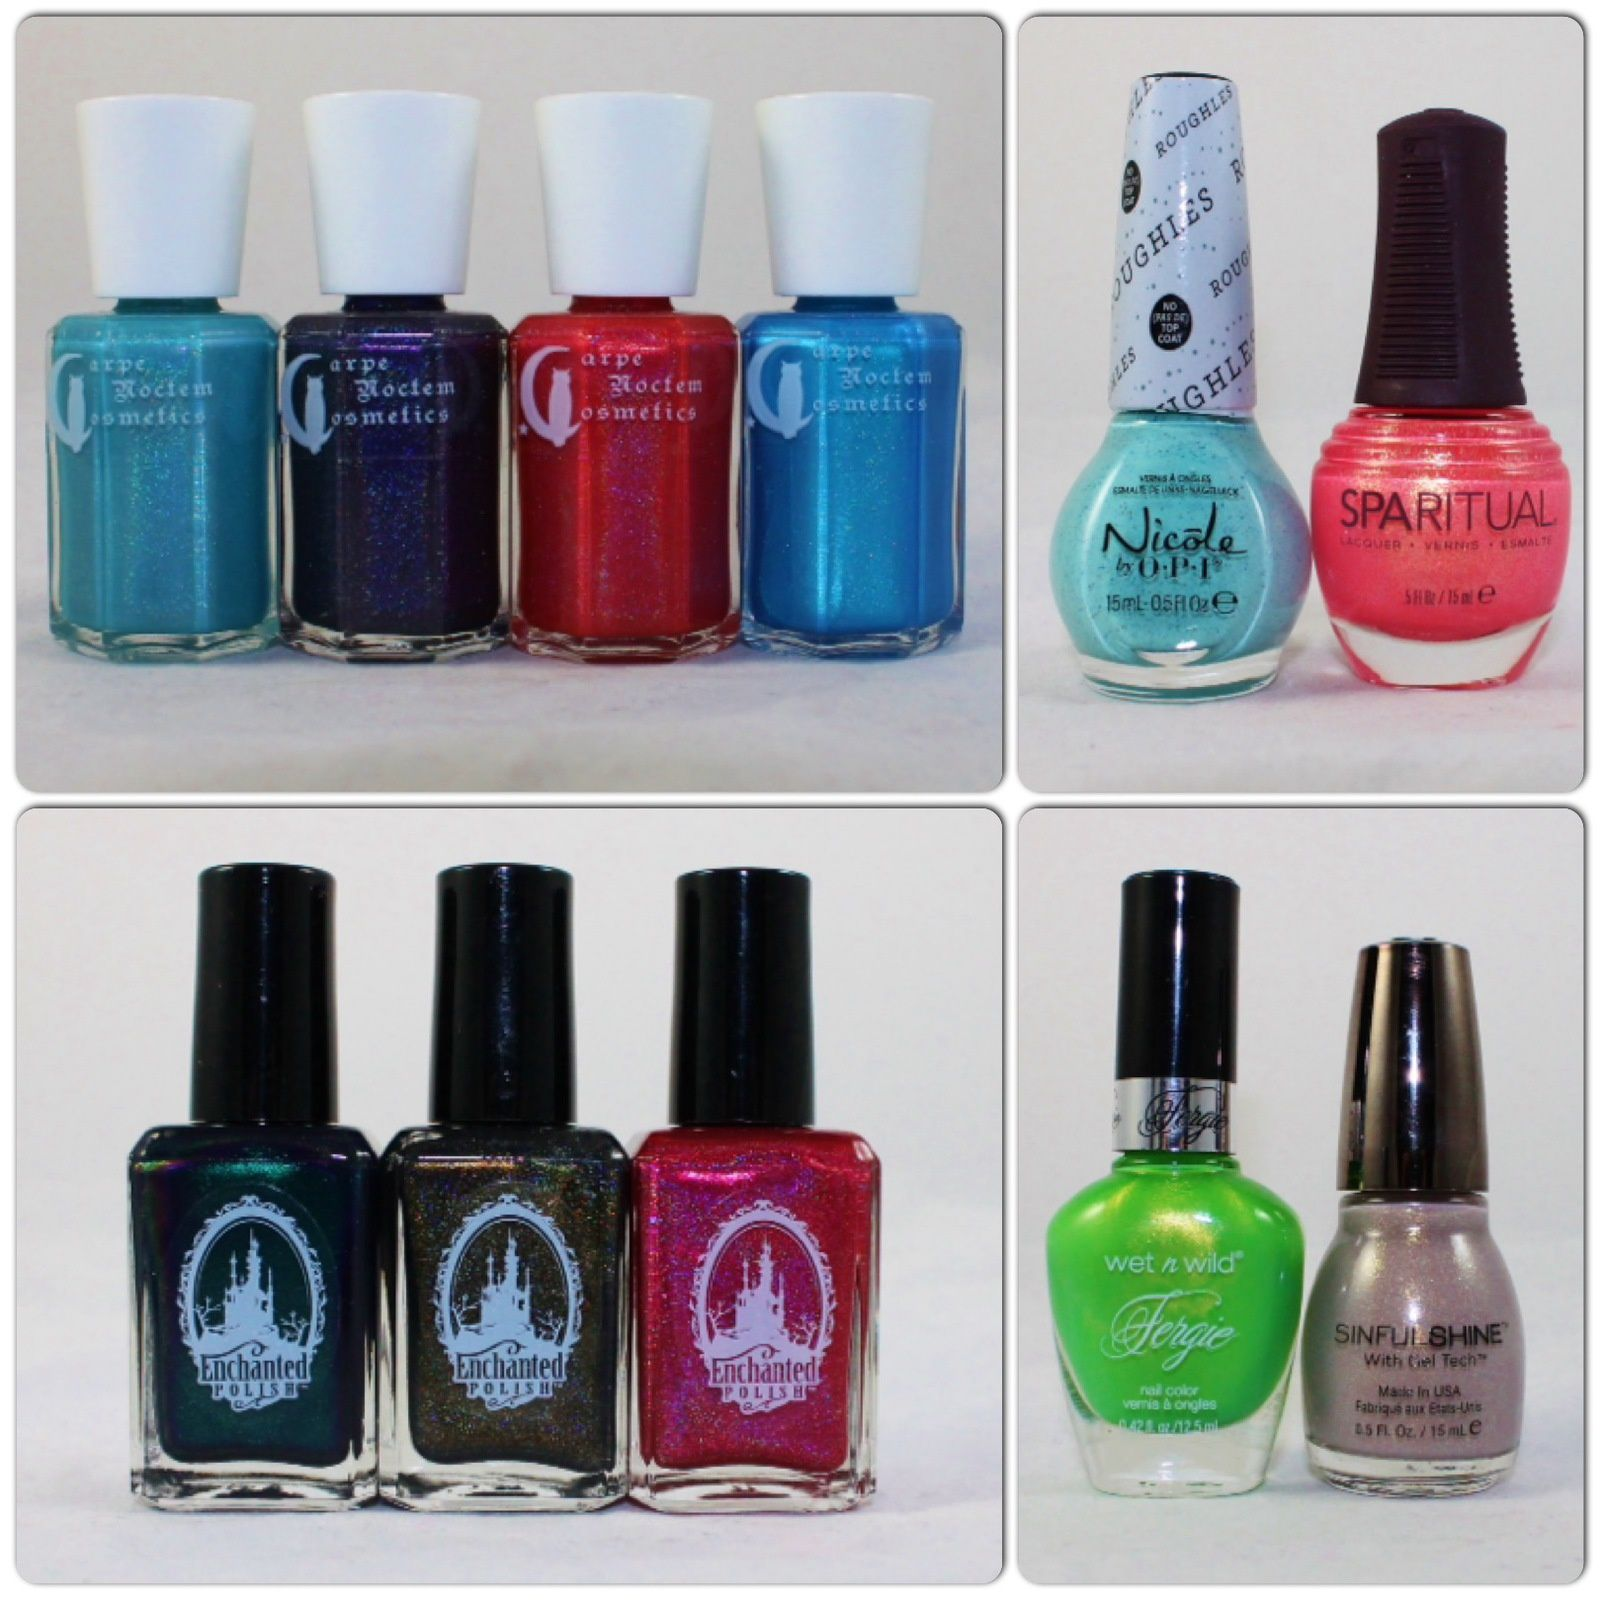 Carpe Noctem Cosmetics Olaf!, Midnight Madness, Princess Ariel, King Triton. Nicole by OPI On What Grounds? Sparitual Wilderness. Enchanted Polish August 2014, October 2014, September 2014. Wet'n Wild Glowstick. Sinful Colors Procecco.